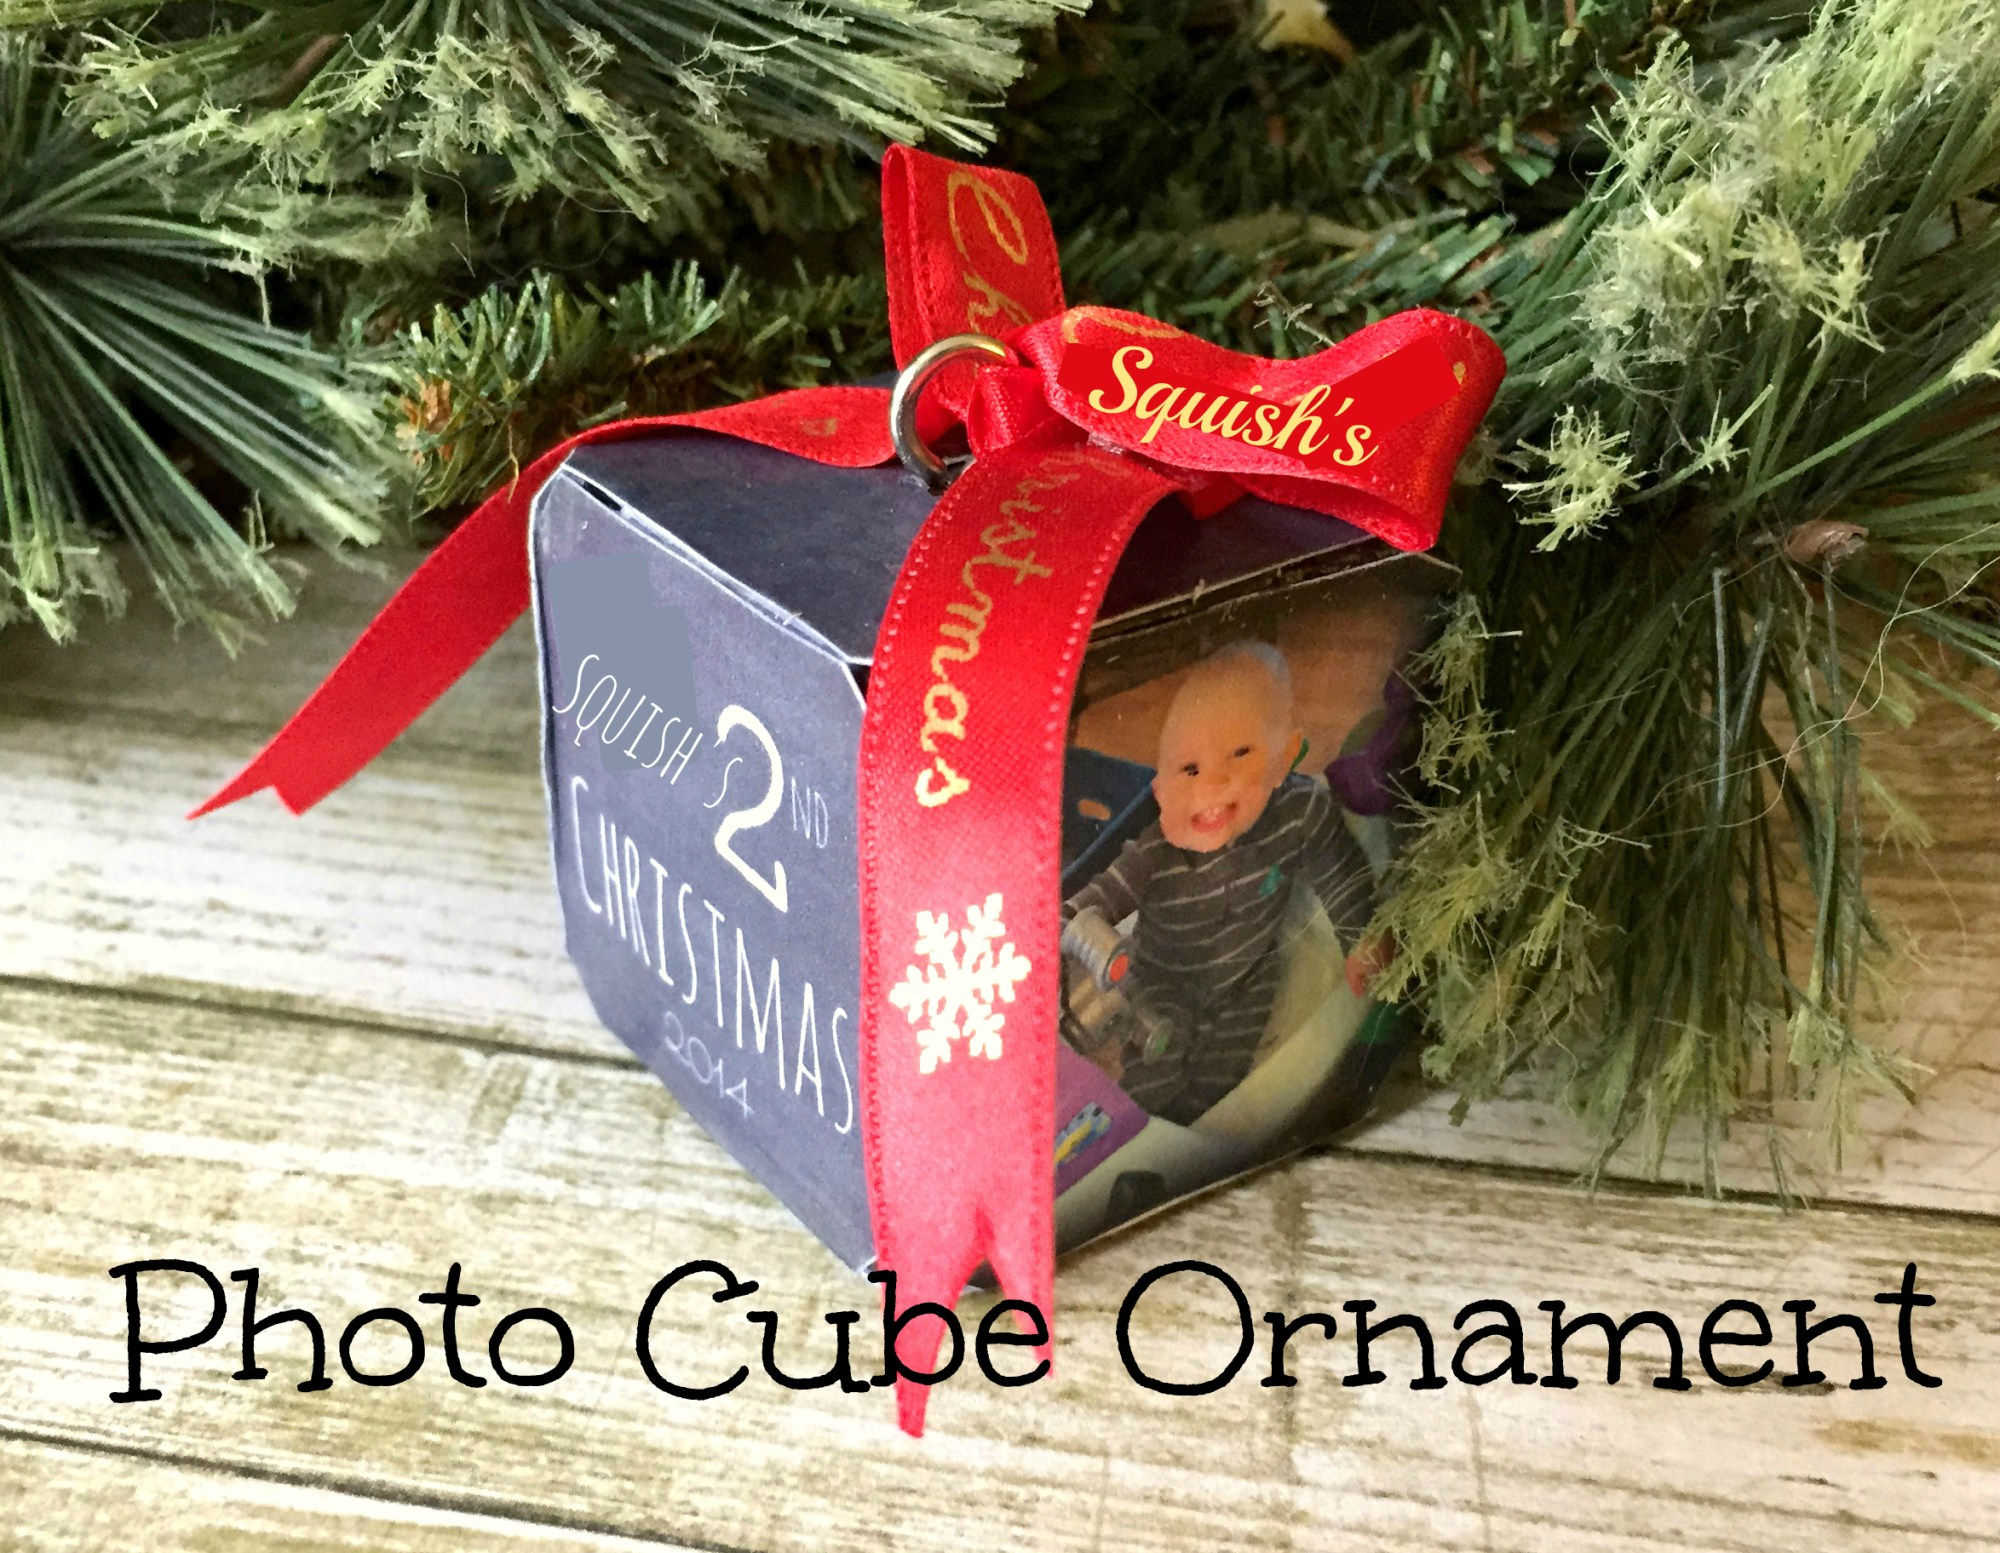 diy photo cube ornament